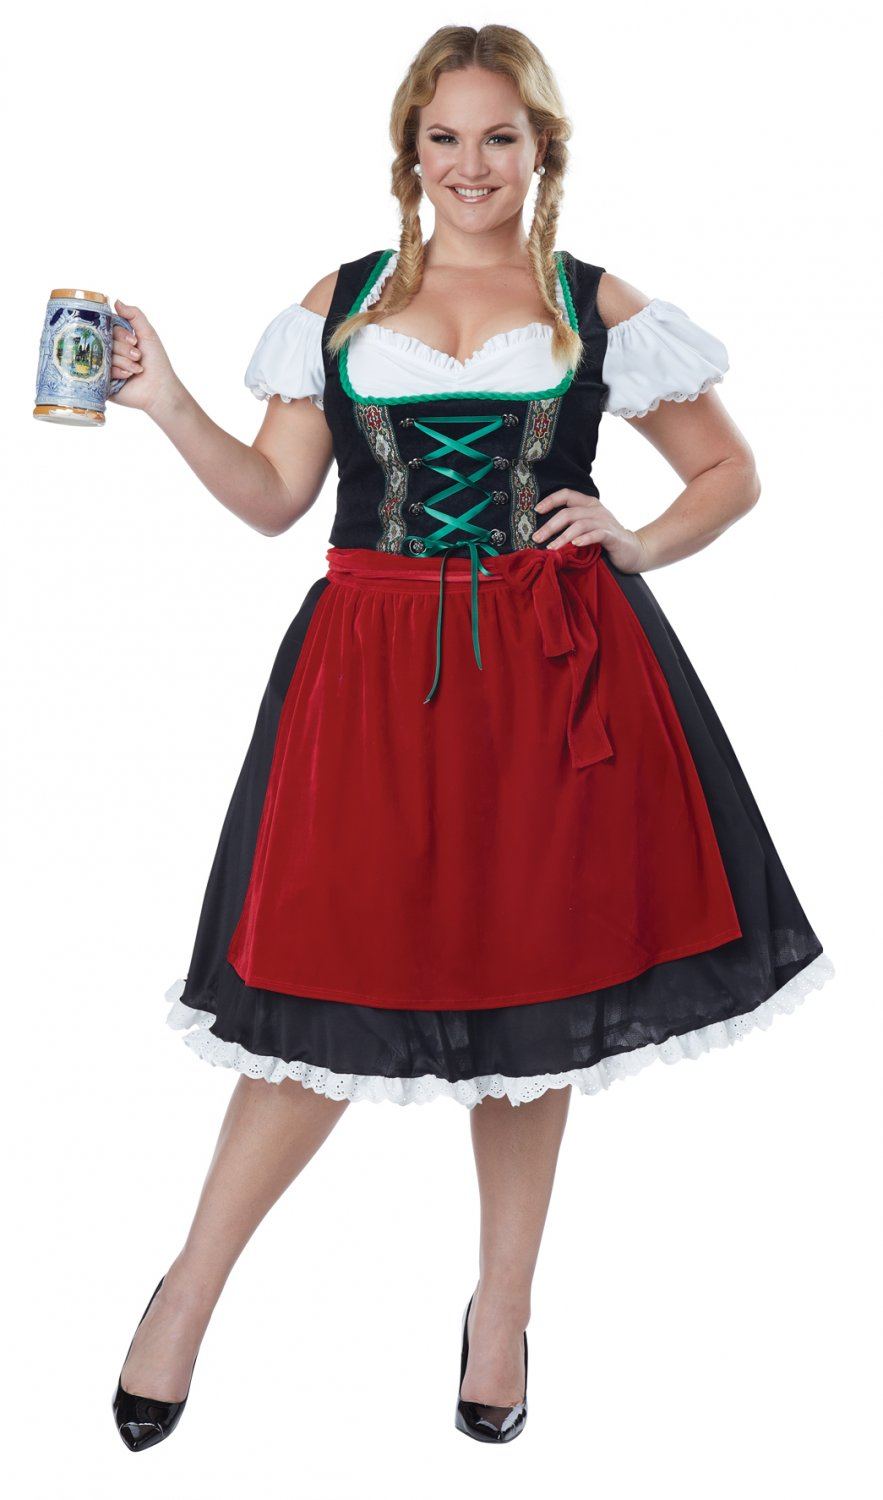 Oktoberfest Fraulein Bar Maid Plus Size Adult Costume: 1X-Large #1751